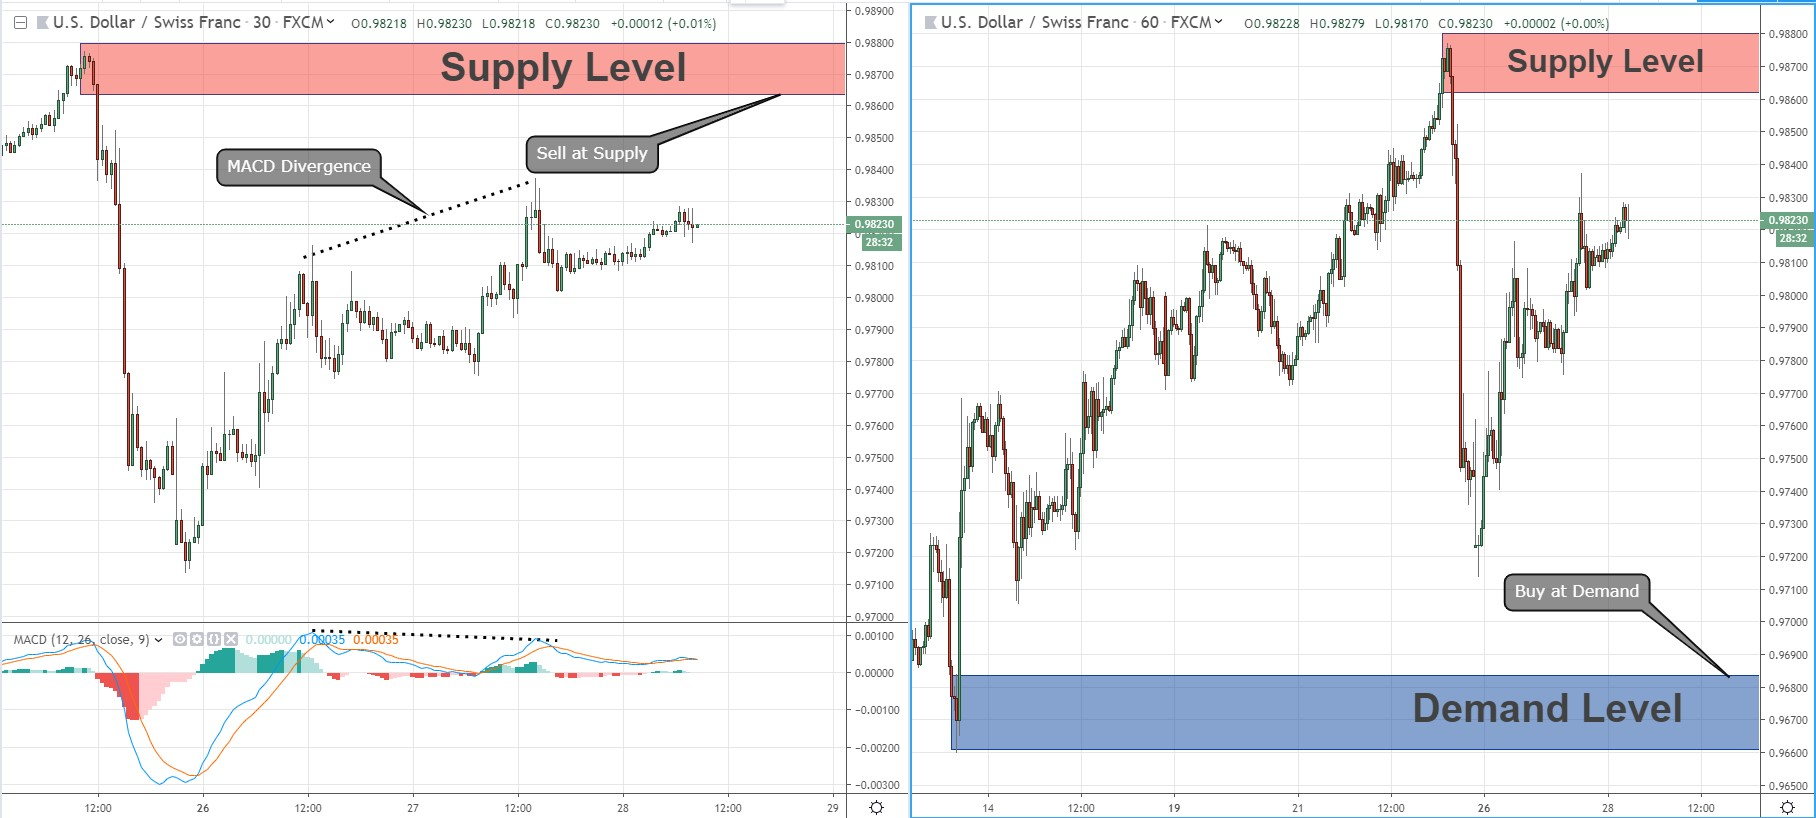 Price Action Analysis For Swing Traders on USD/CHF